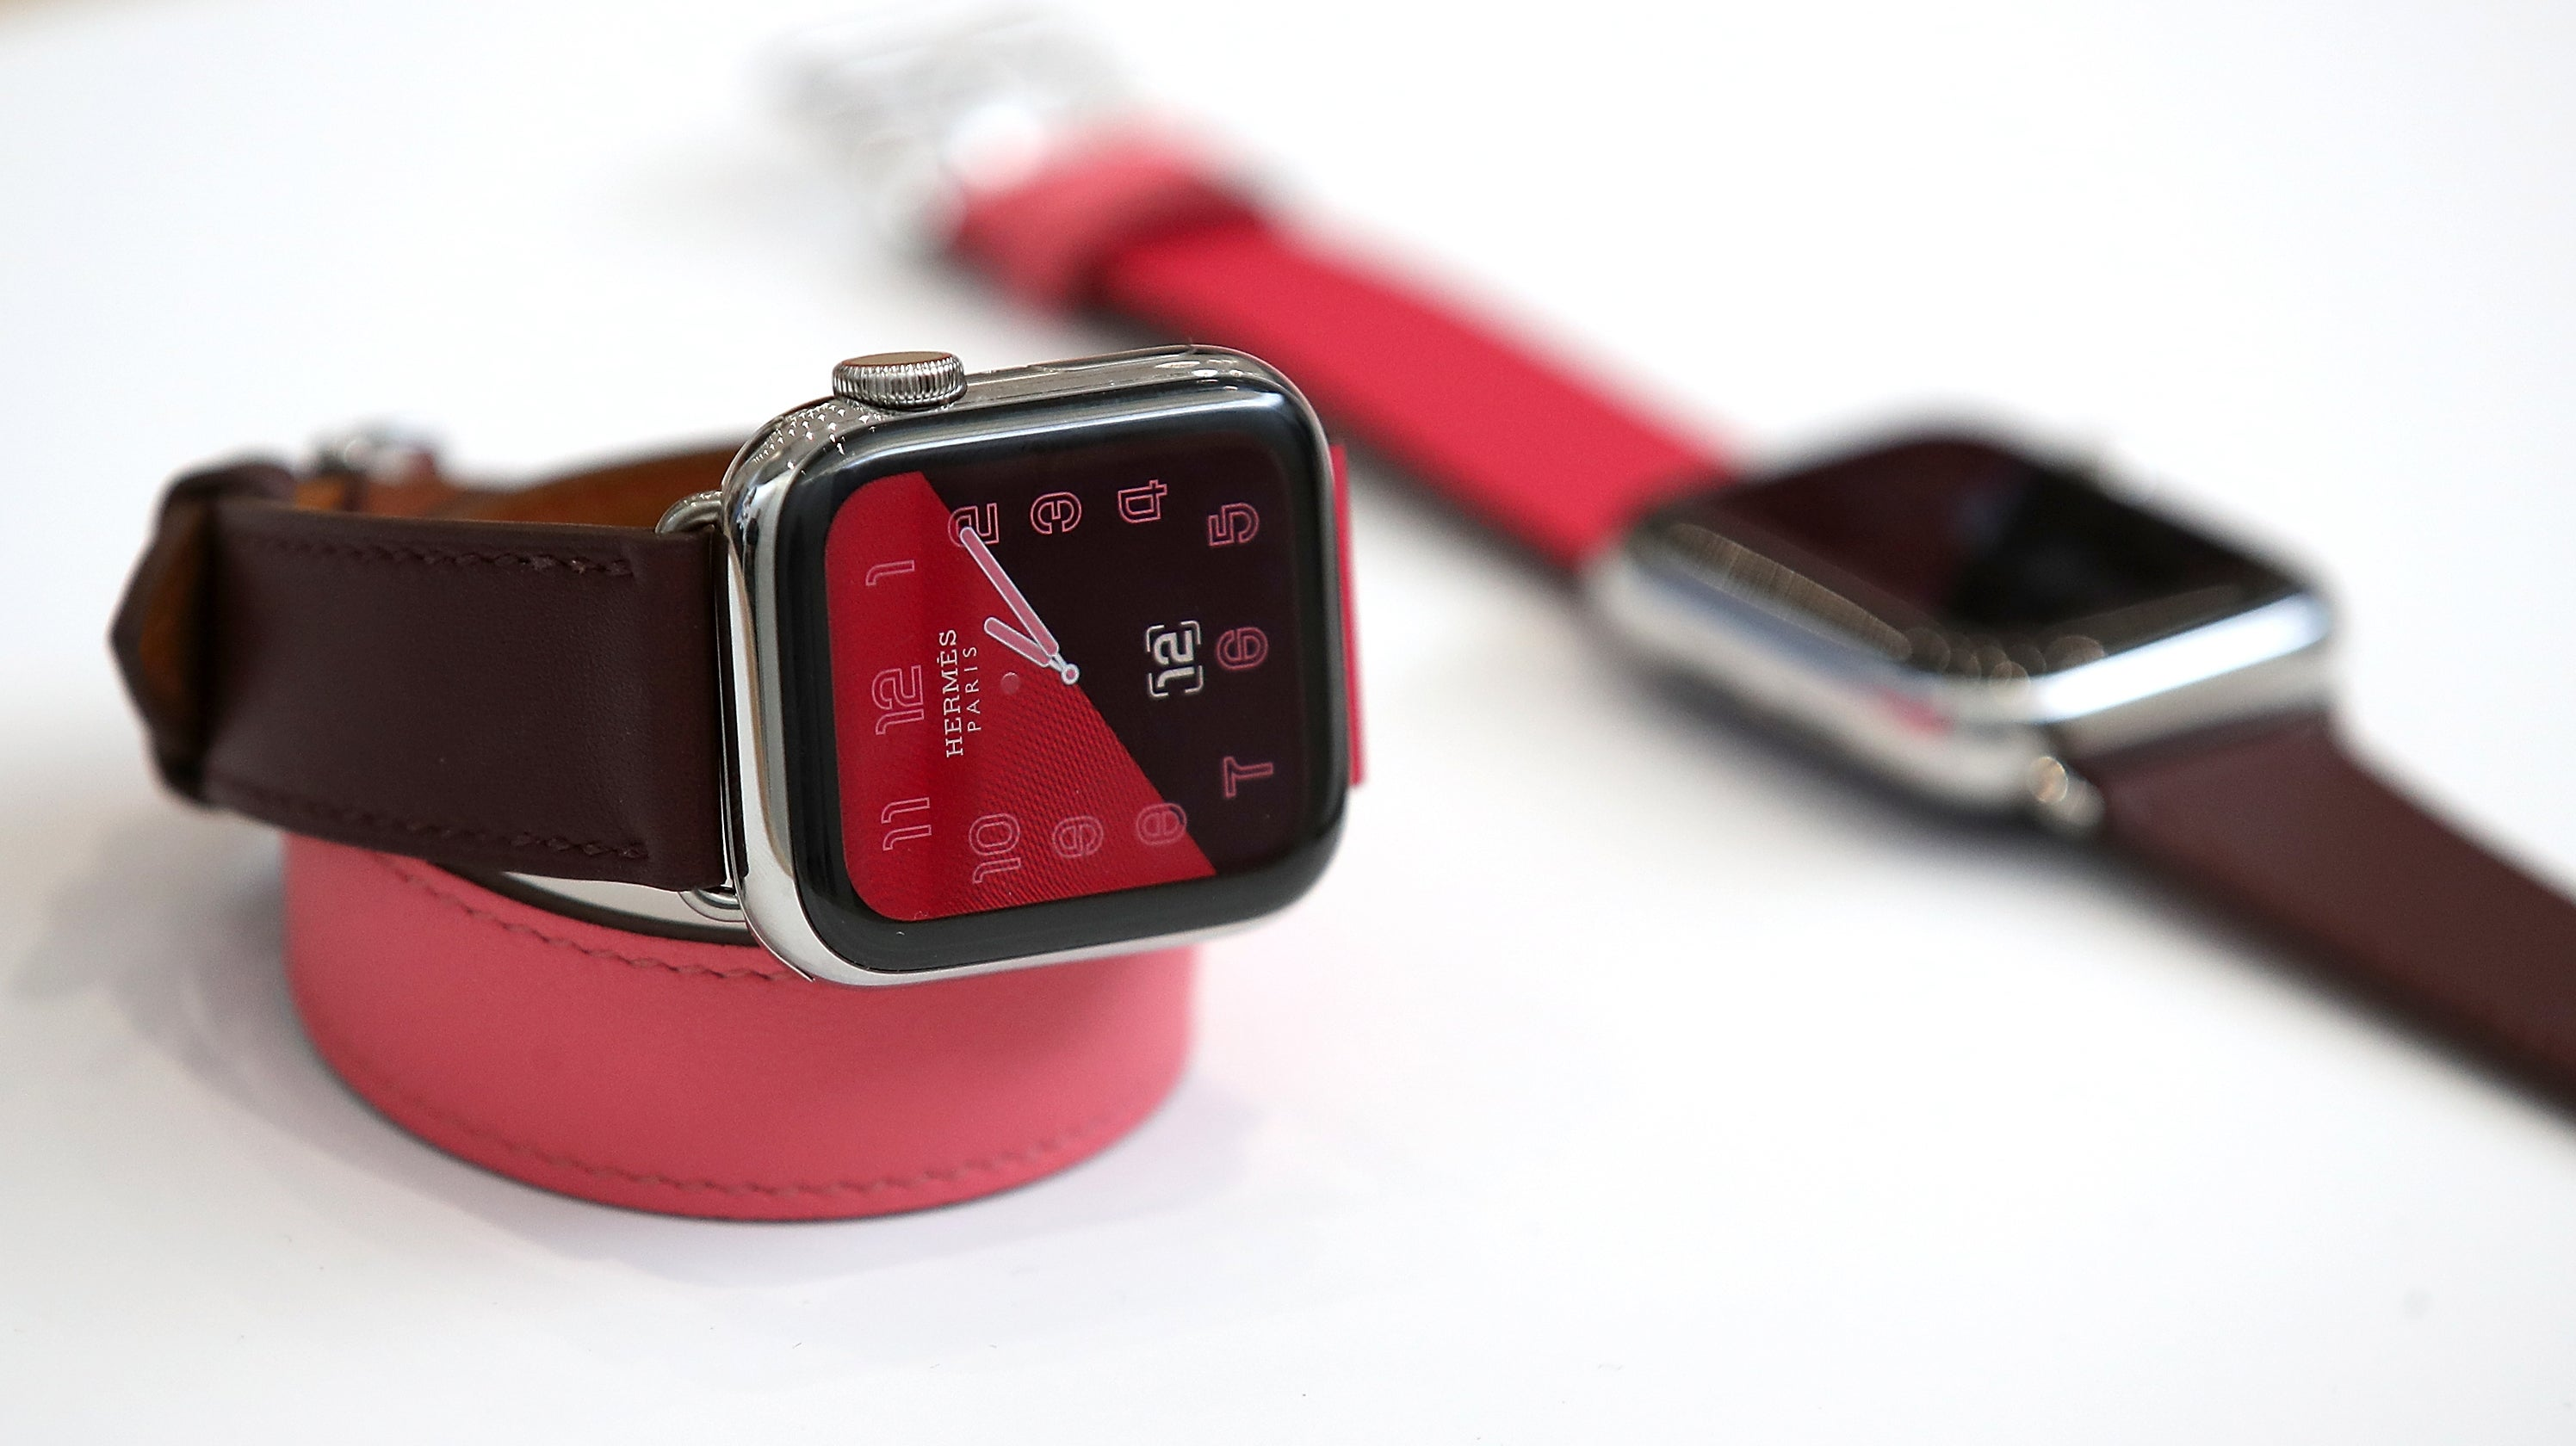 What To Know About The ECG Feature In The New Apple Watch